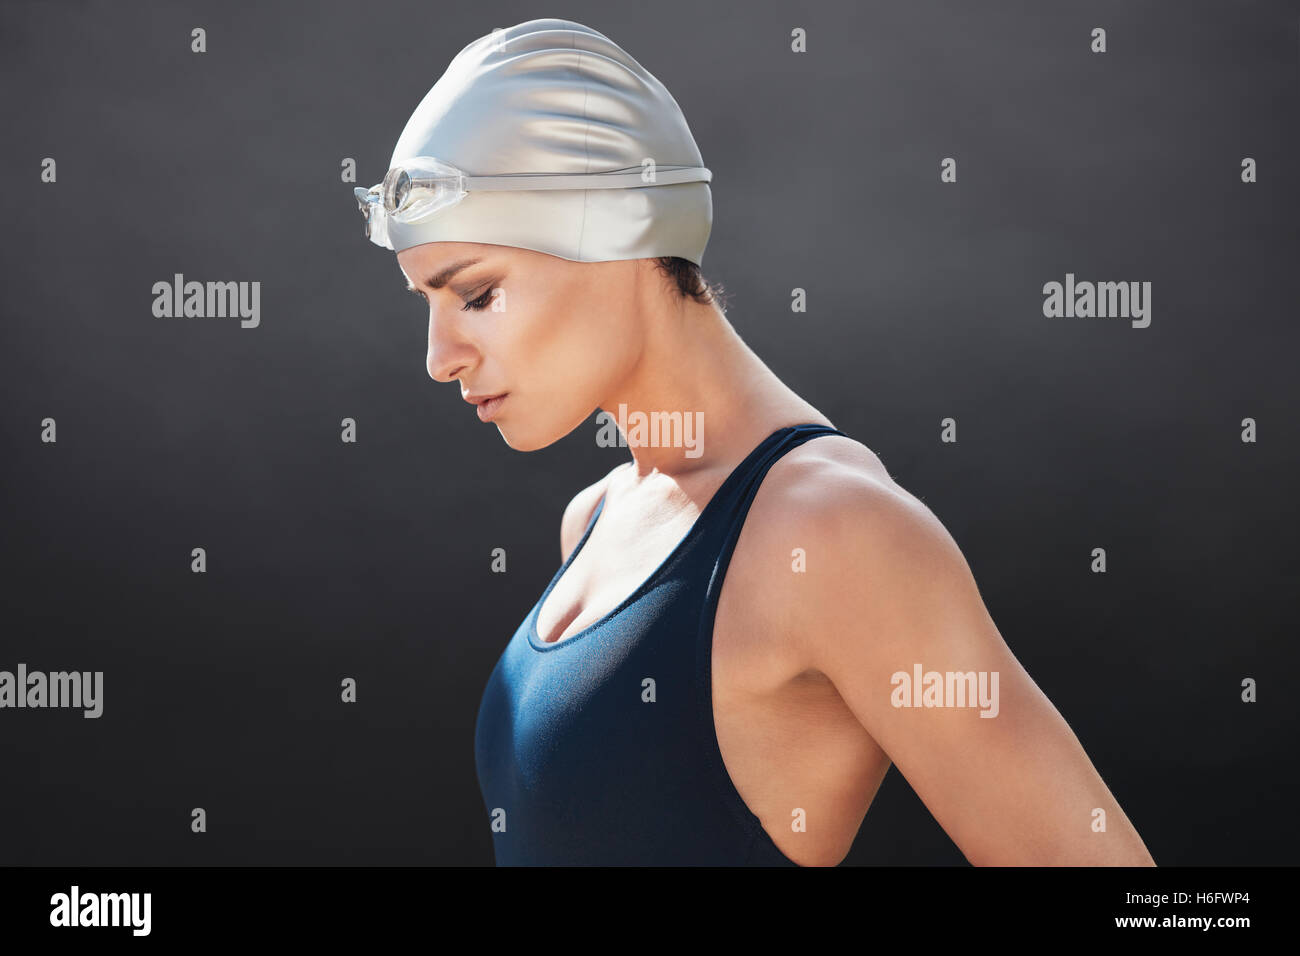 Side view of fit young female swimmer on black background. Fitness woman in swimming costume concentrating. - Stock Image